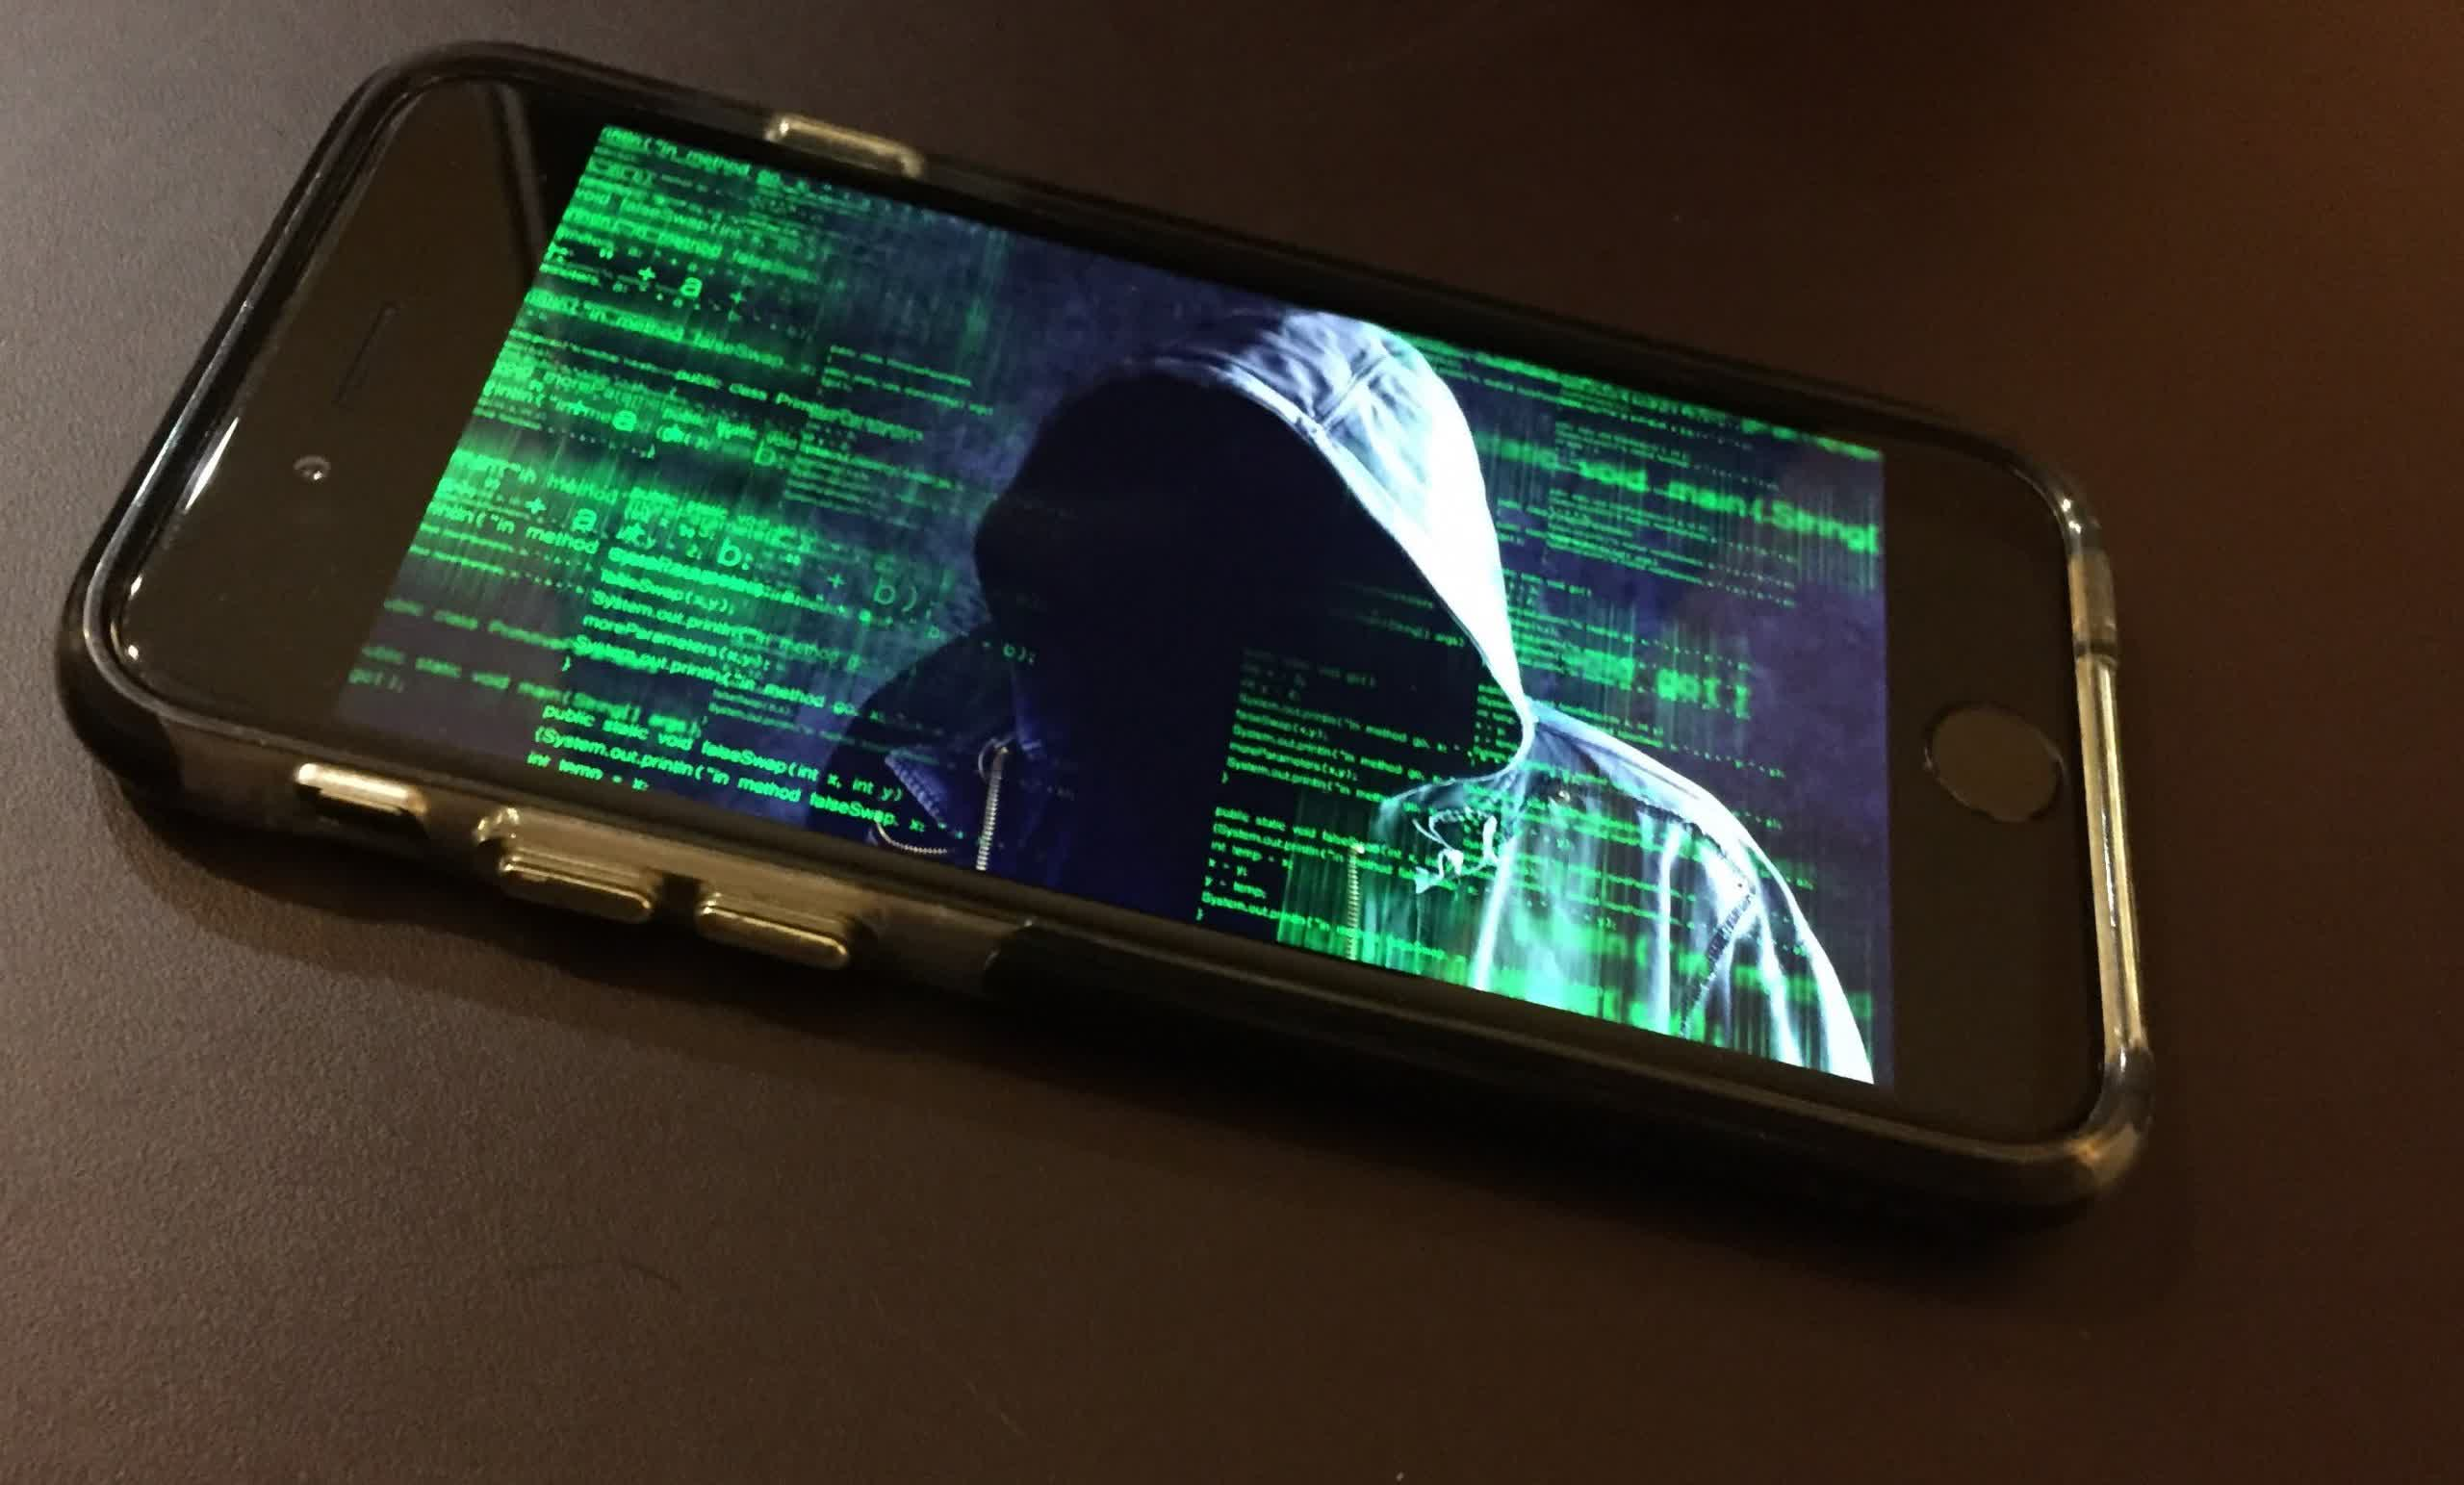 Makers of spyware app 'SpyFone' and its CEO get slapped with proposed ban by the FTC